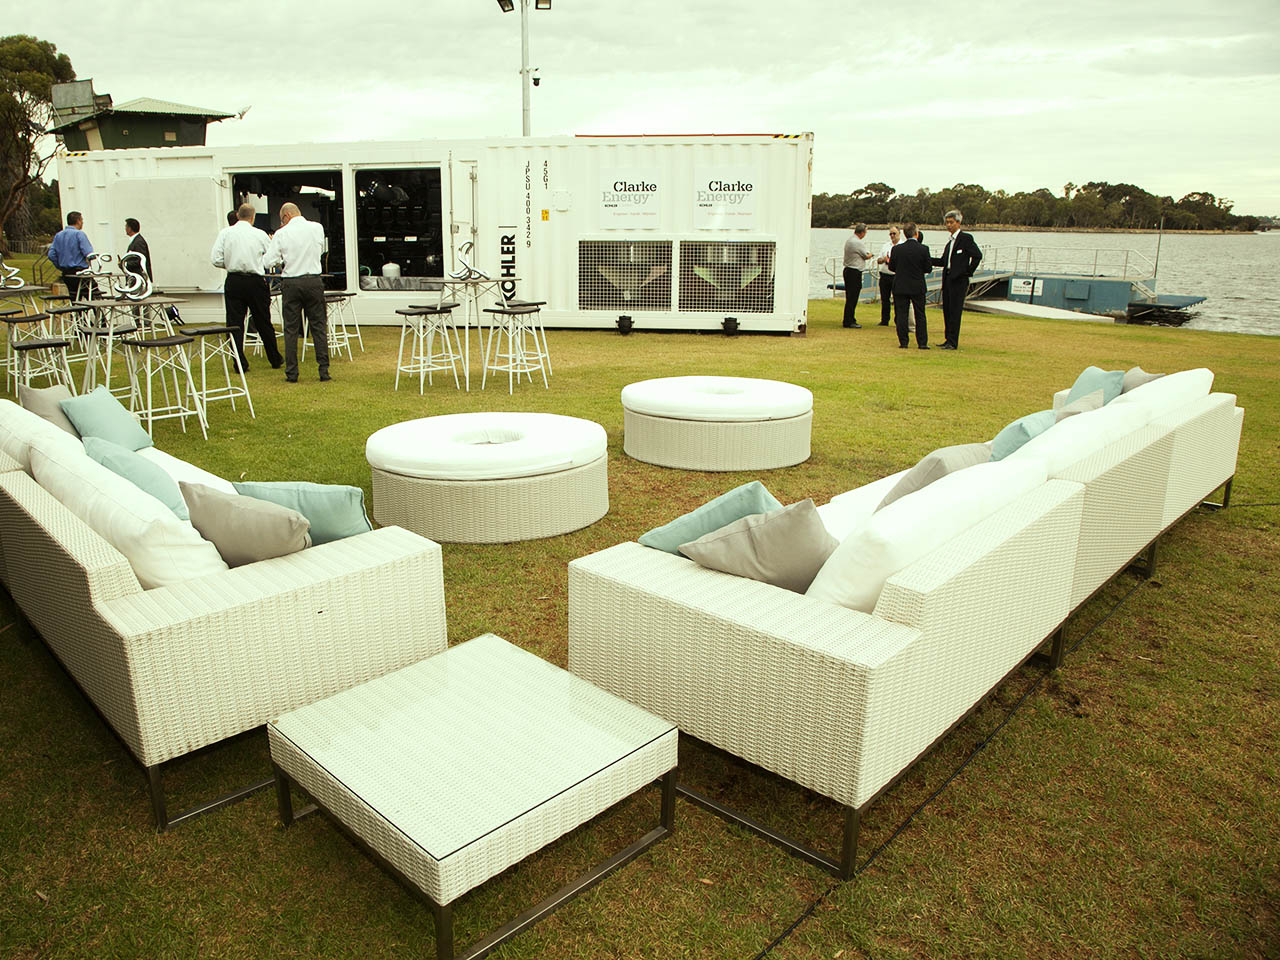 Outdoor event venue Swan river